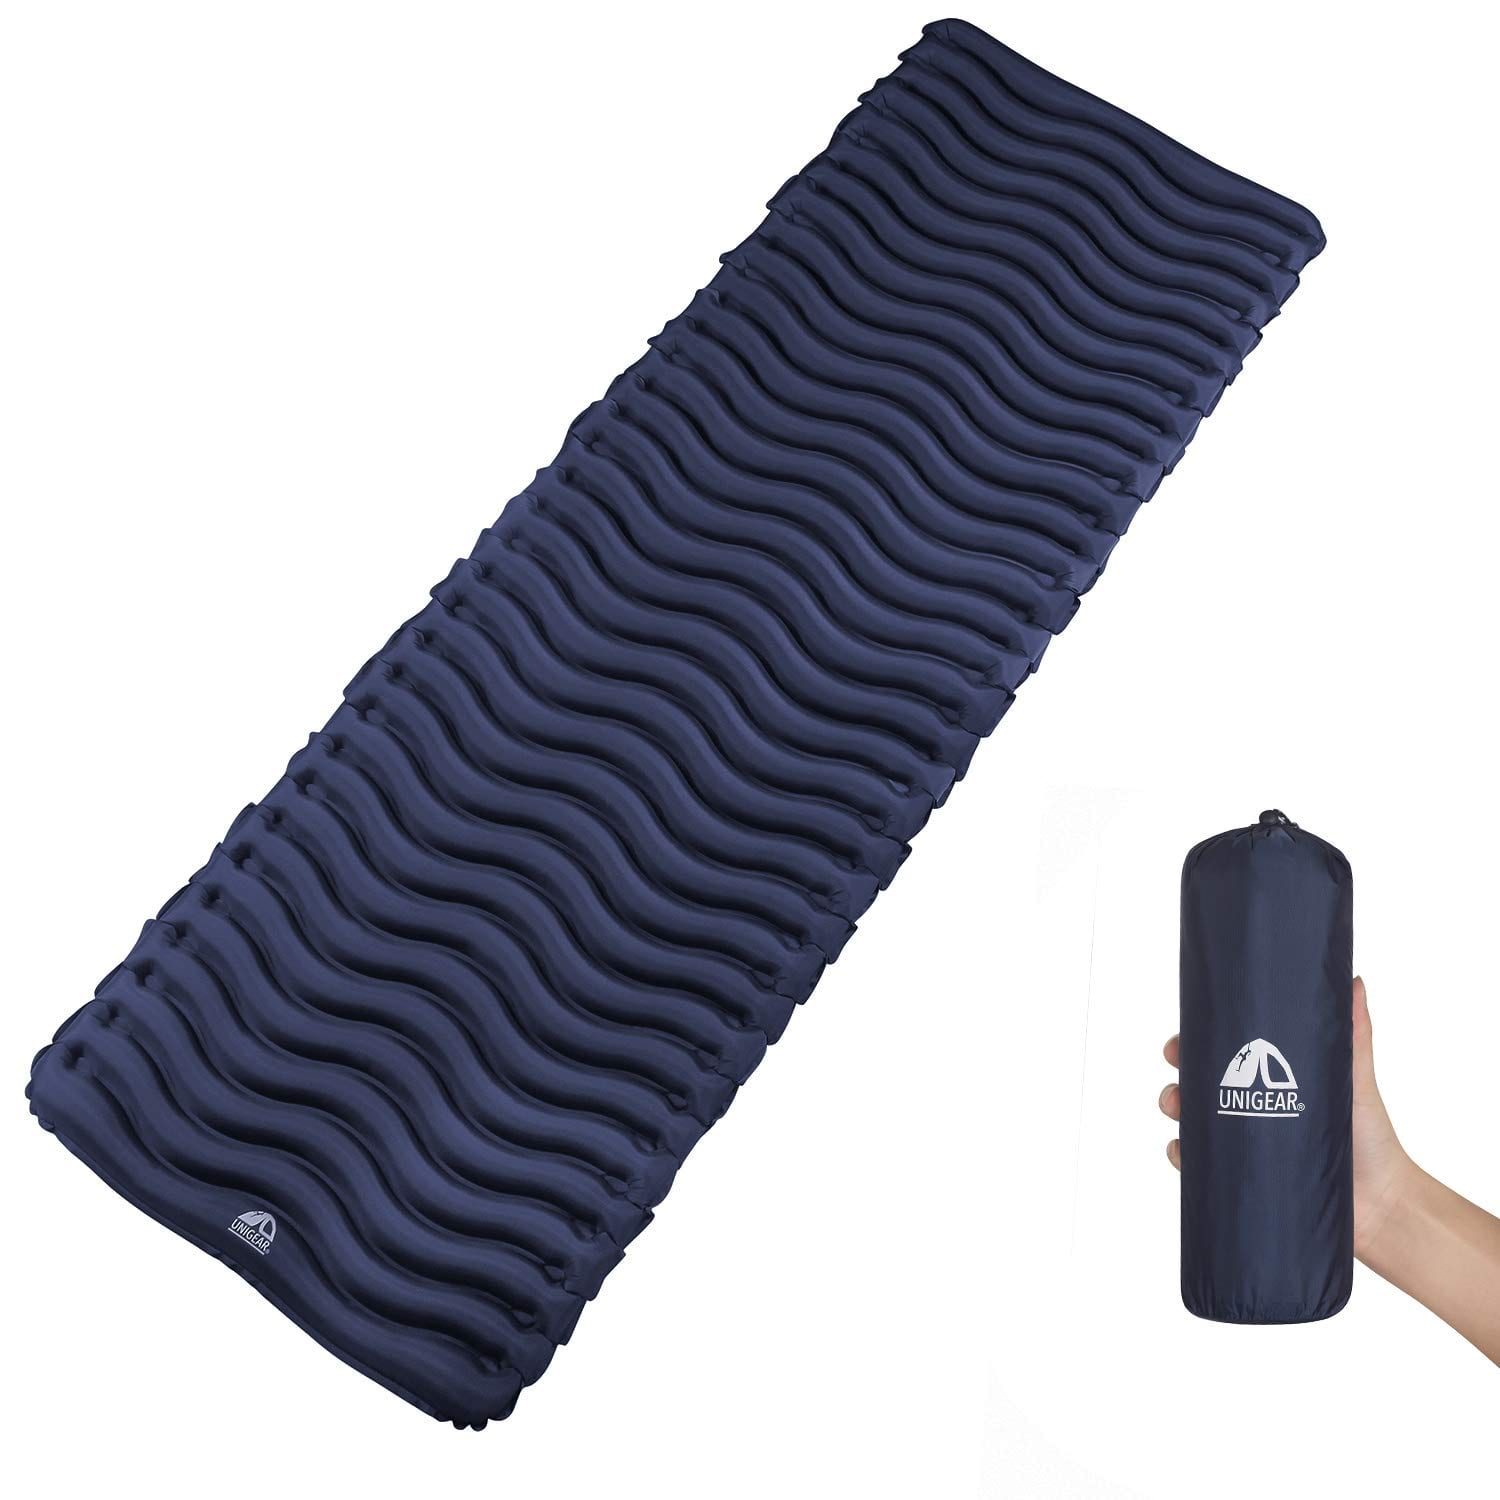 Unigear Ultralight Inflatable Sleeping Pad - $17.99 + Free Shipping